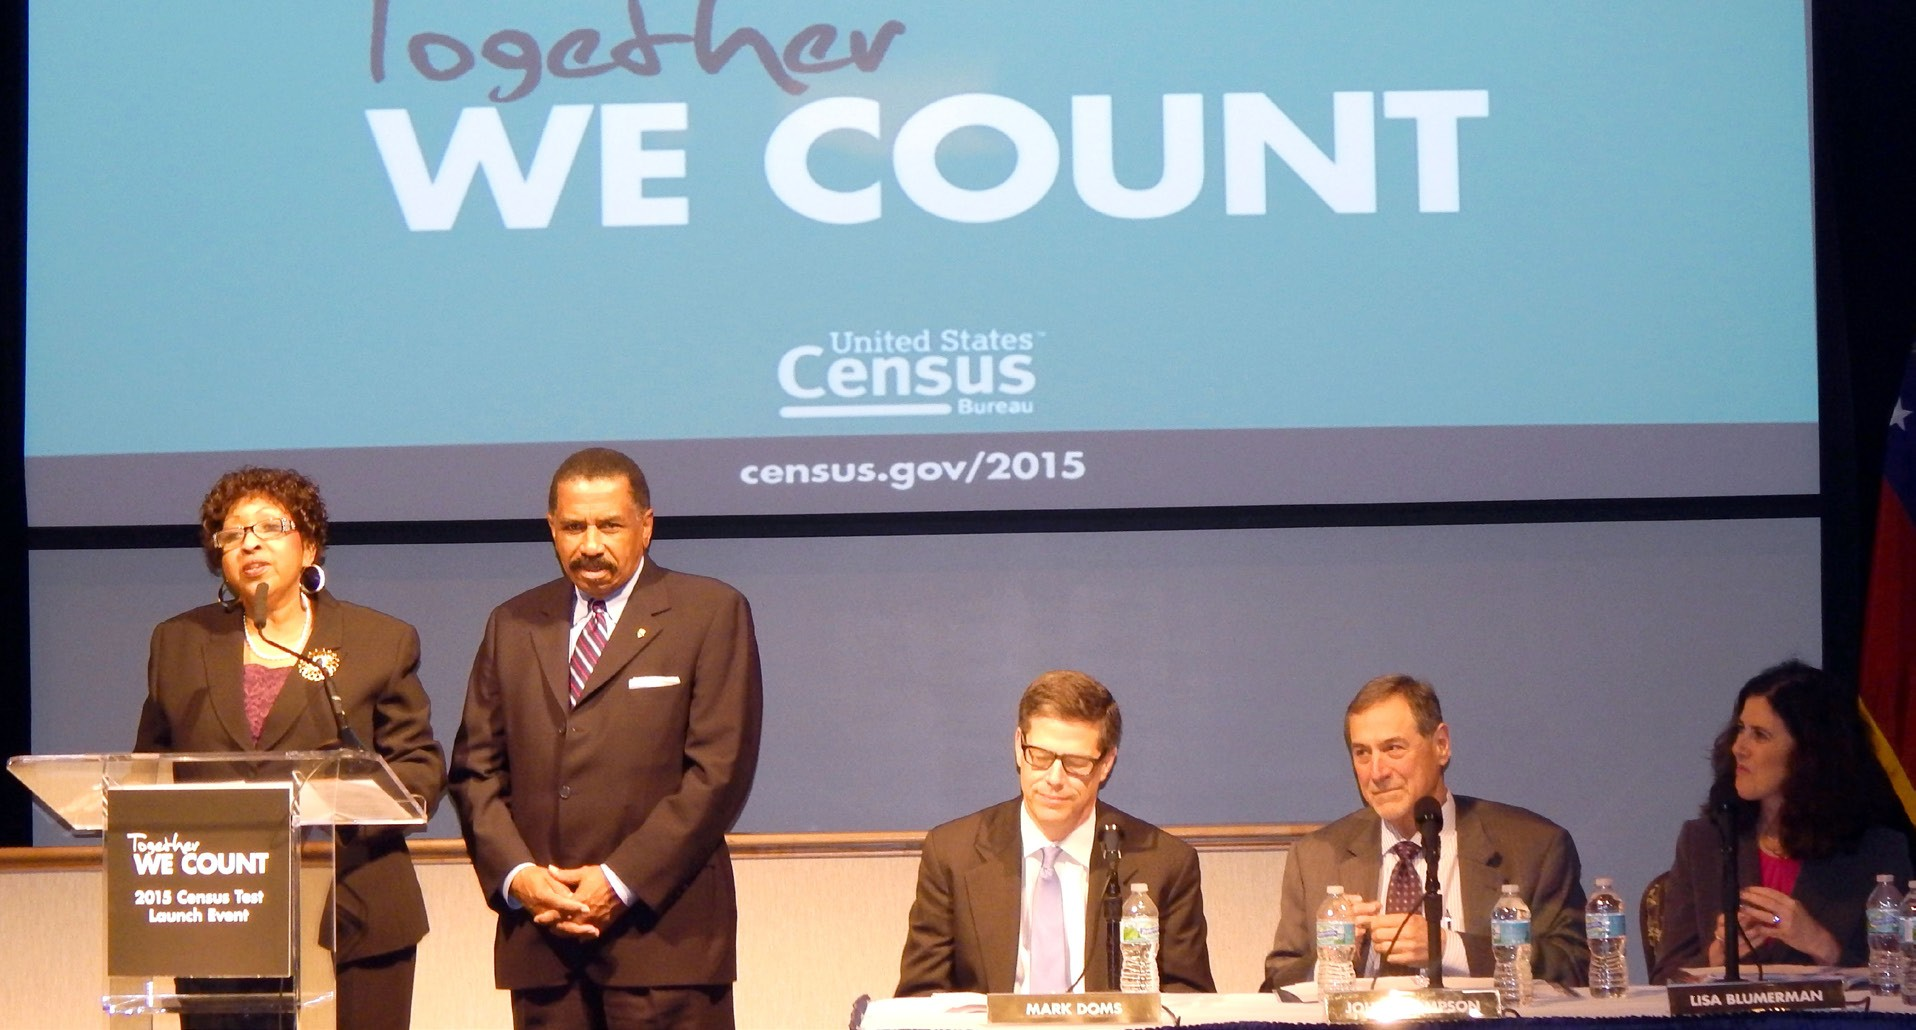 Mayor Edna B. Jackson along with Chatham County Chairman Al Scott announced last Monday that the Savannah area will participate in the 2015 Census Test Questionnaire online. Seated panel included Dr. Mark E. Doms, Under Secretary of Commerce for Economic Affairs; John H, Thompson, Director, U. S. Census Bureau and Lisa M. Blumerman, Assoc. Director for the Decennial Census Programs